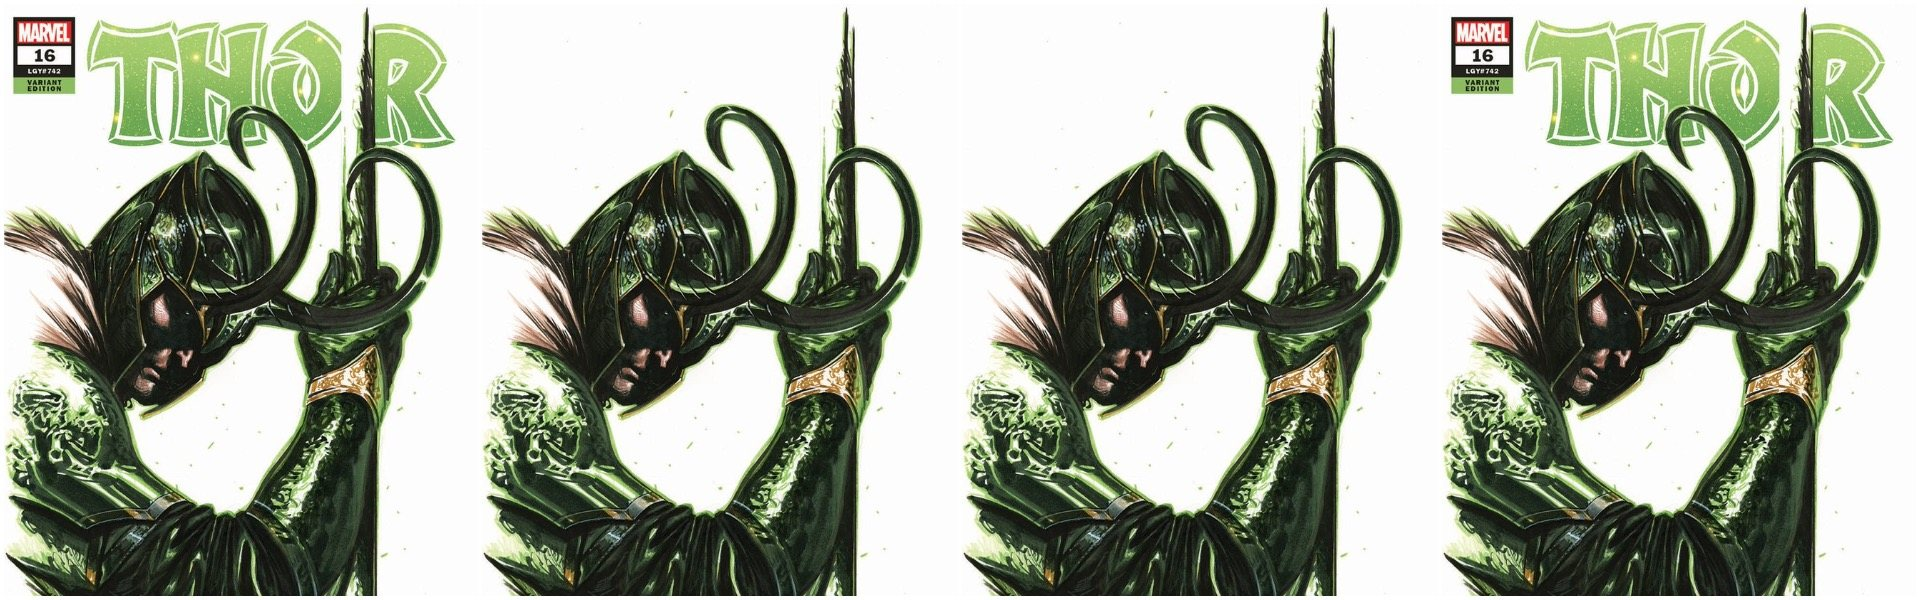 Thor #16 Gabriele Dell'Otto Exclusives